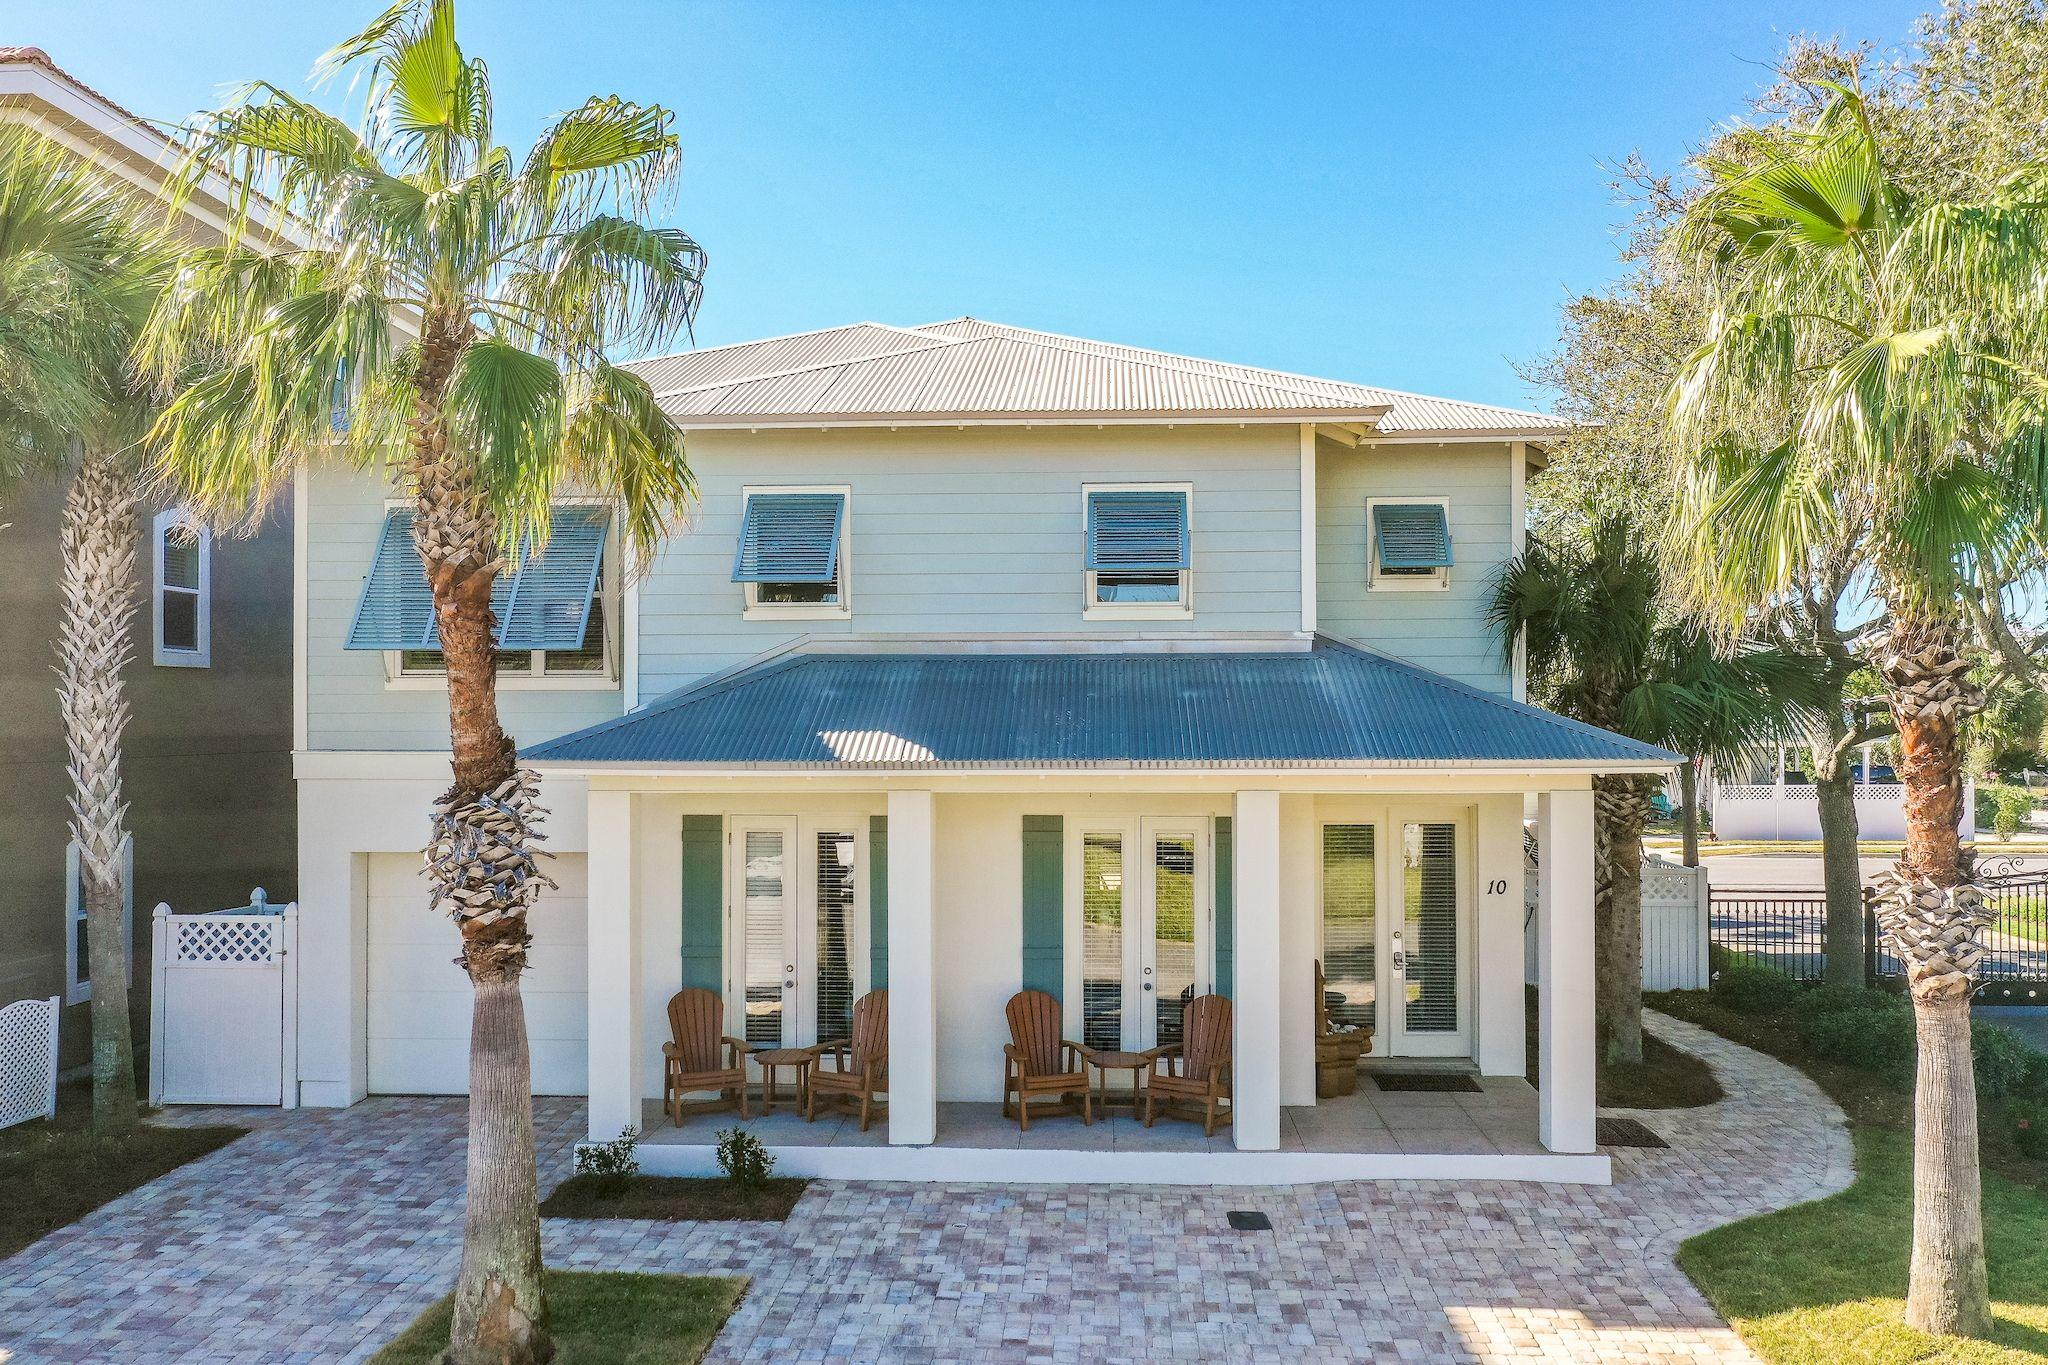 Photo of home for sale at 10 Saint Francis, Destin FL